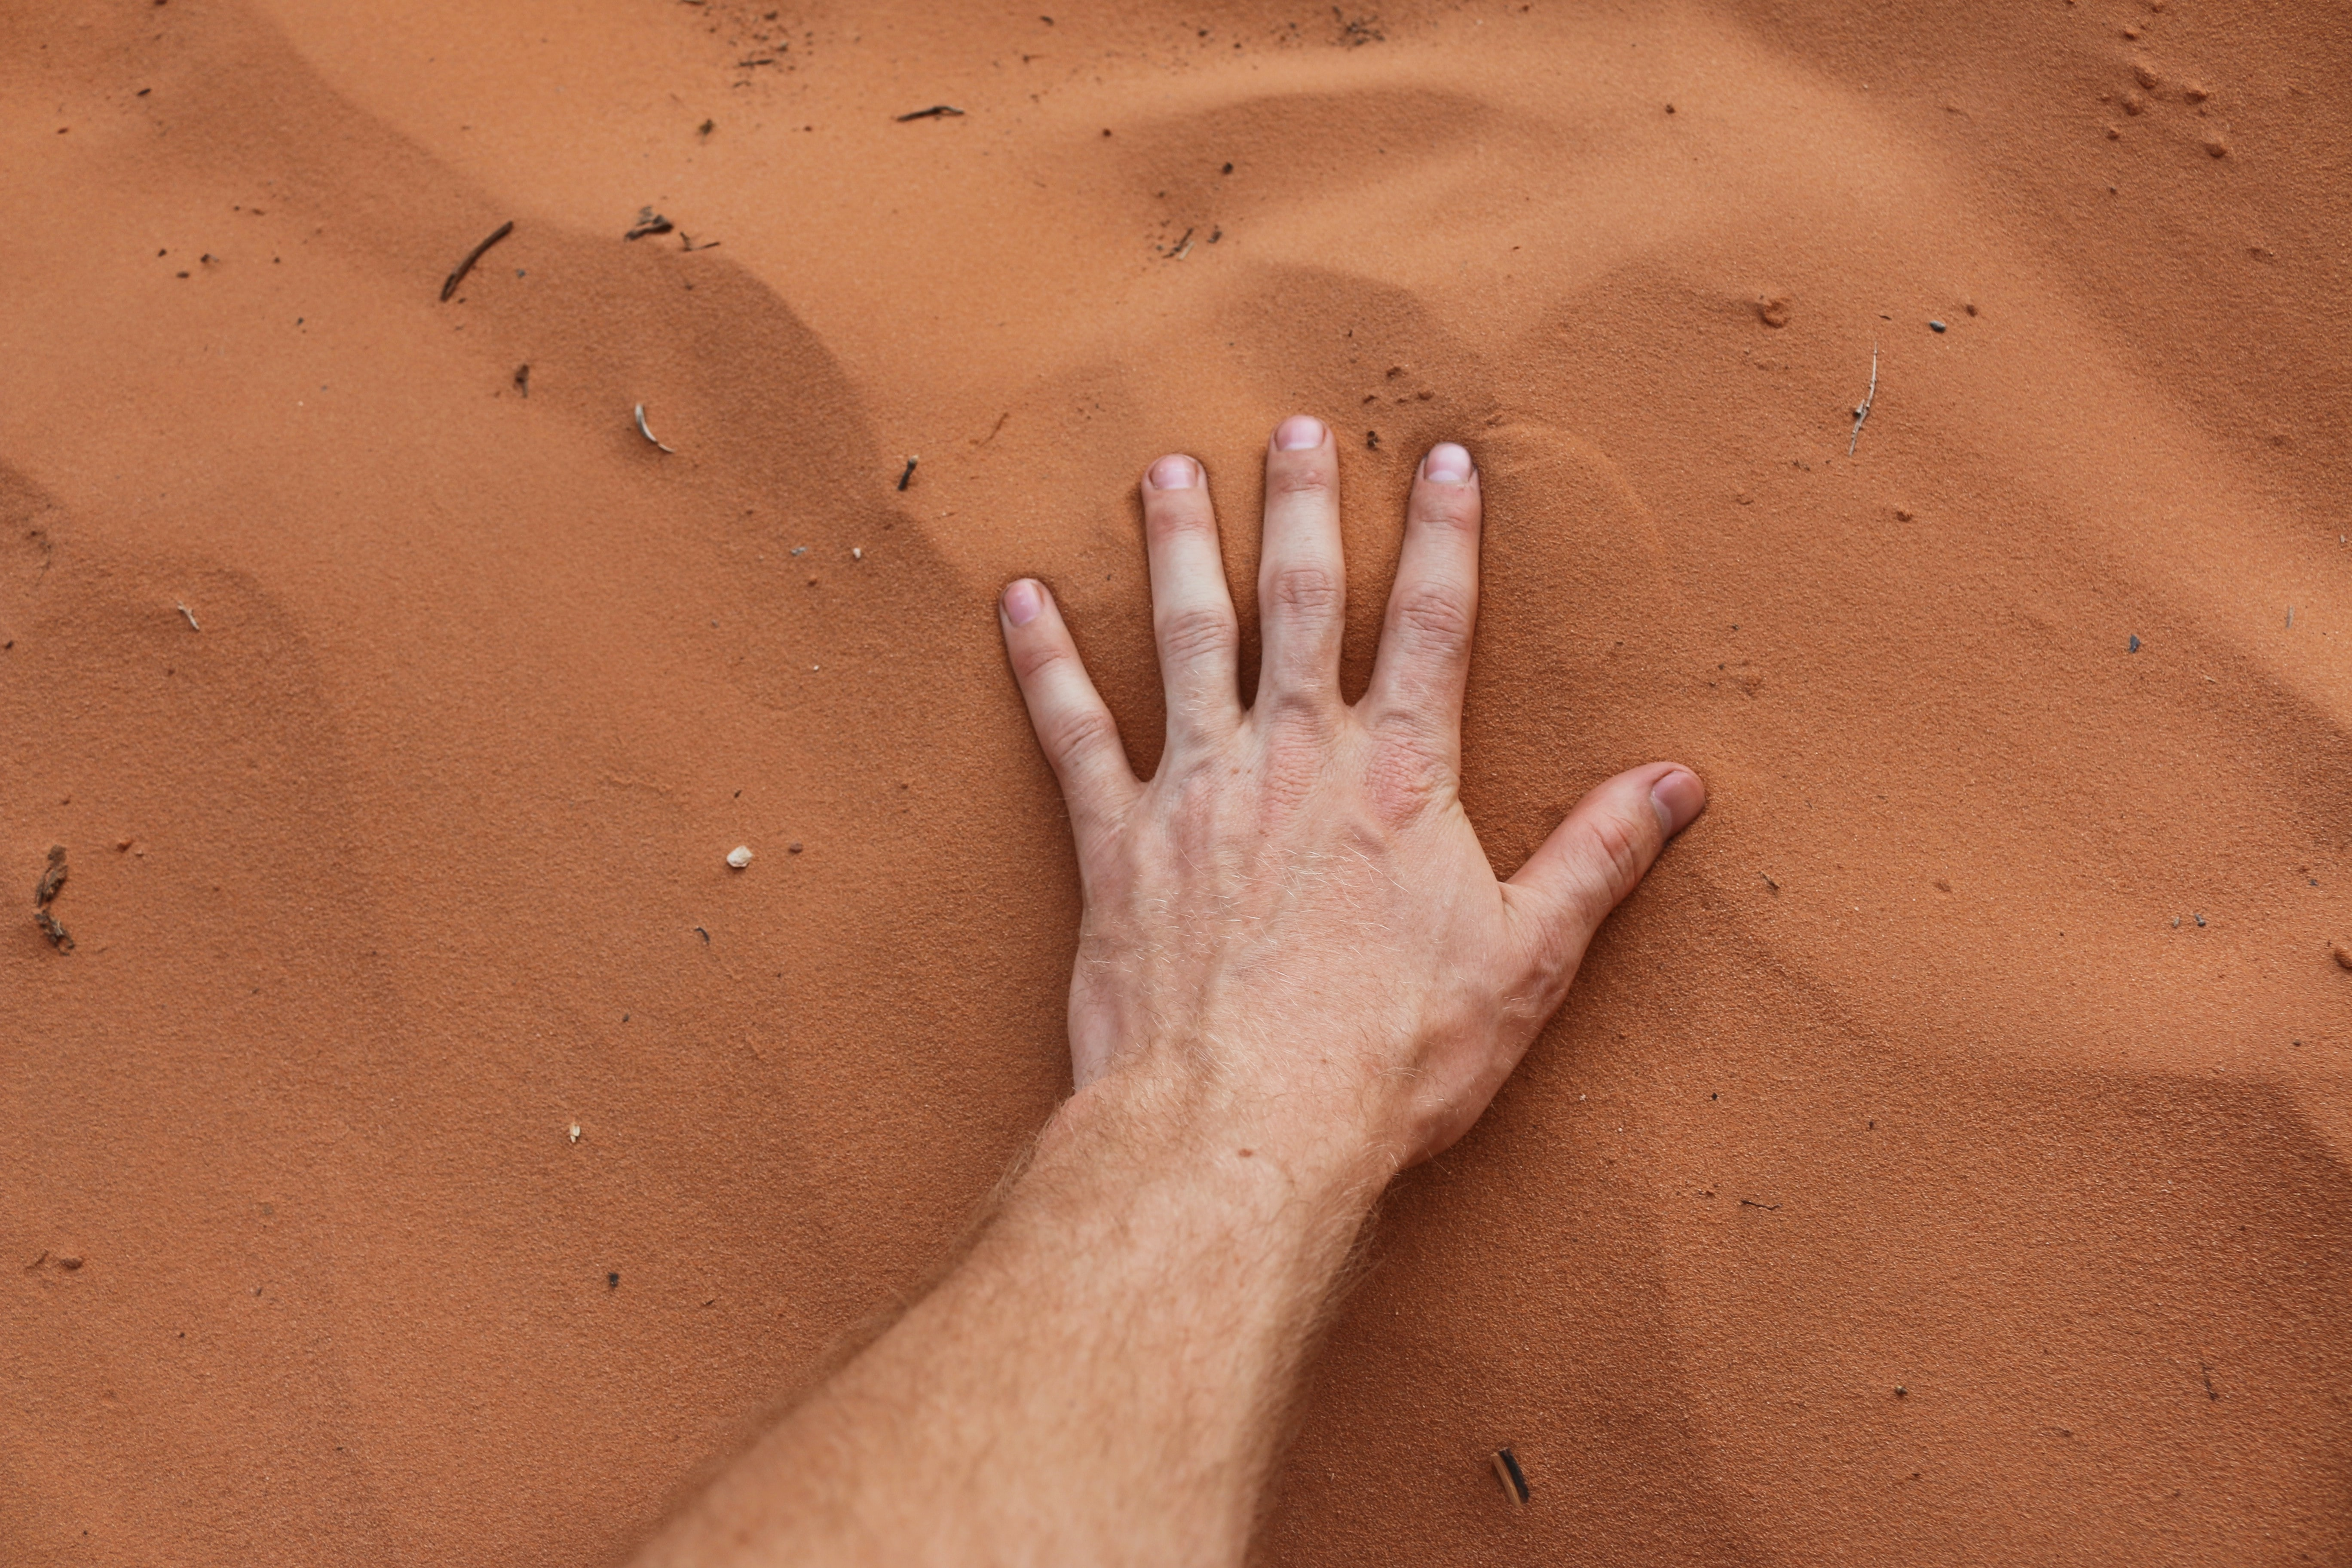 A person placing their hand on sand.